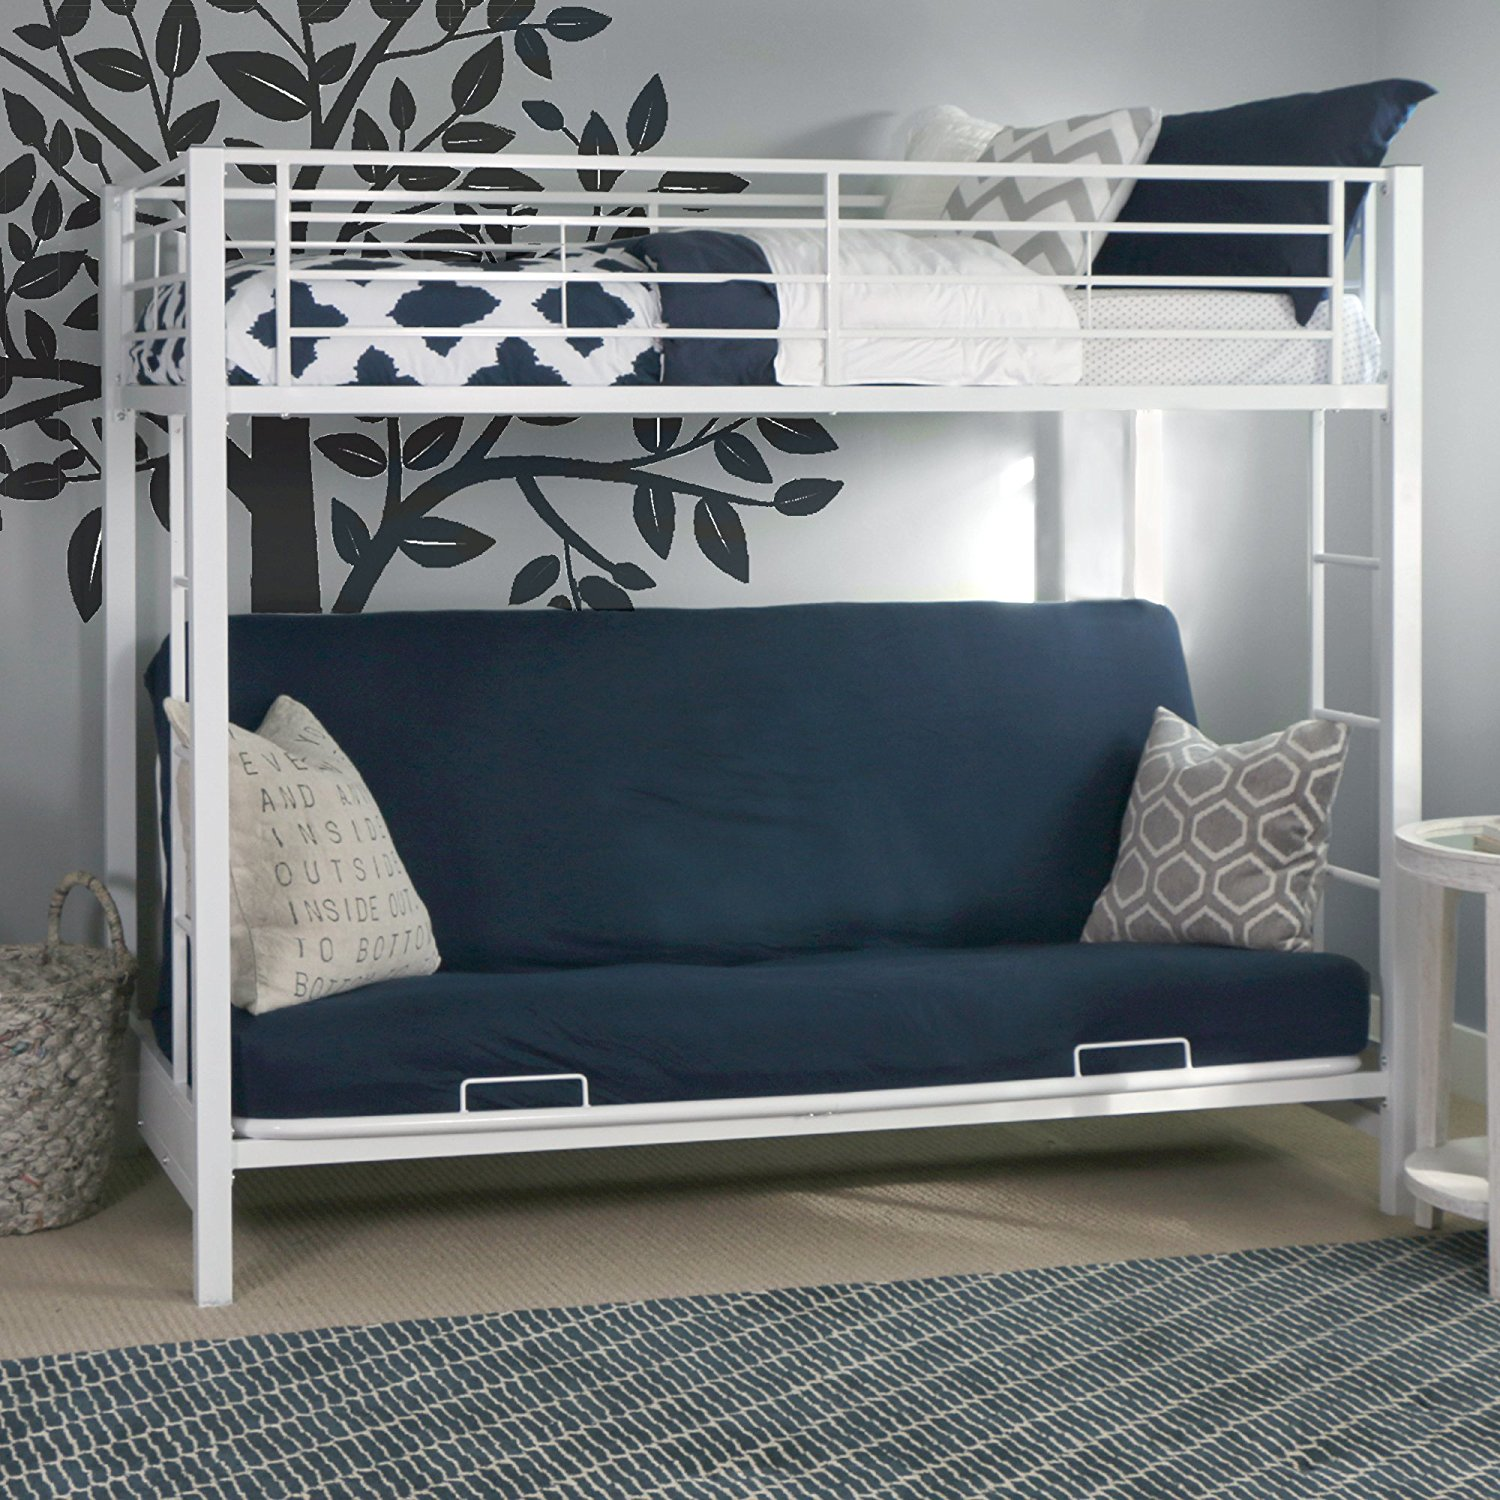 Cozy Couch That Converts To Bunk Bed